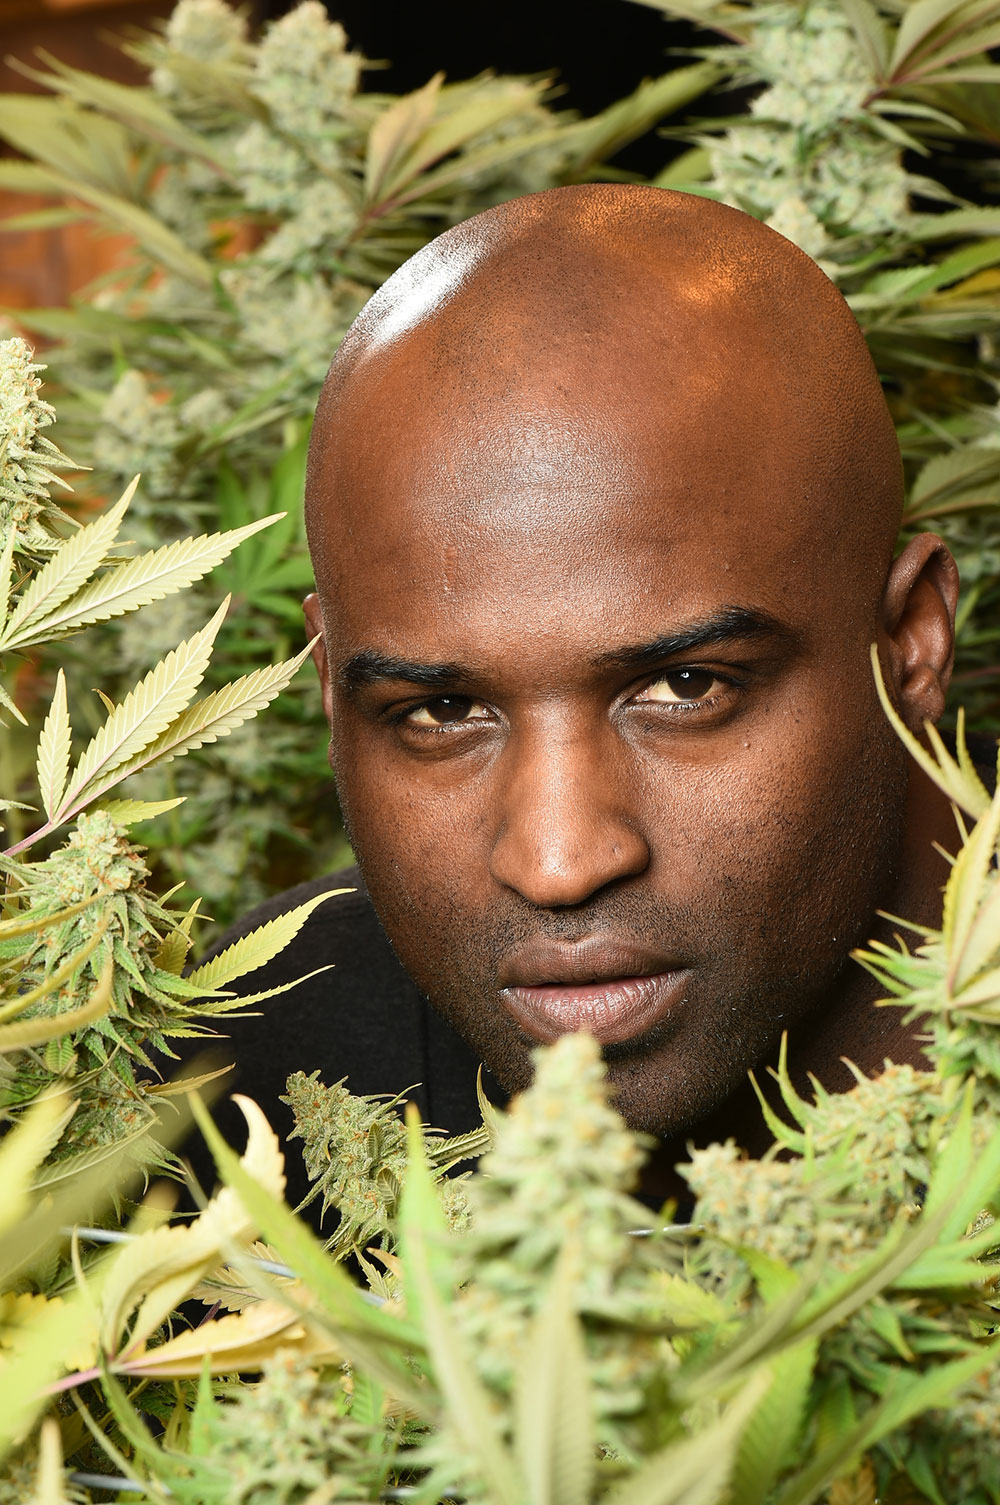 ricky williams on weed drug testing nfl career si longform